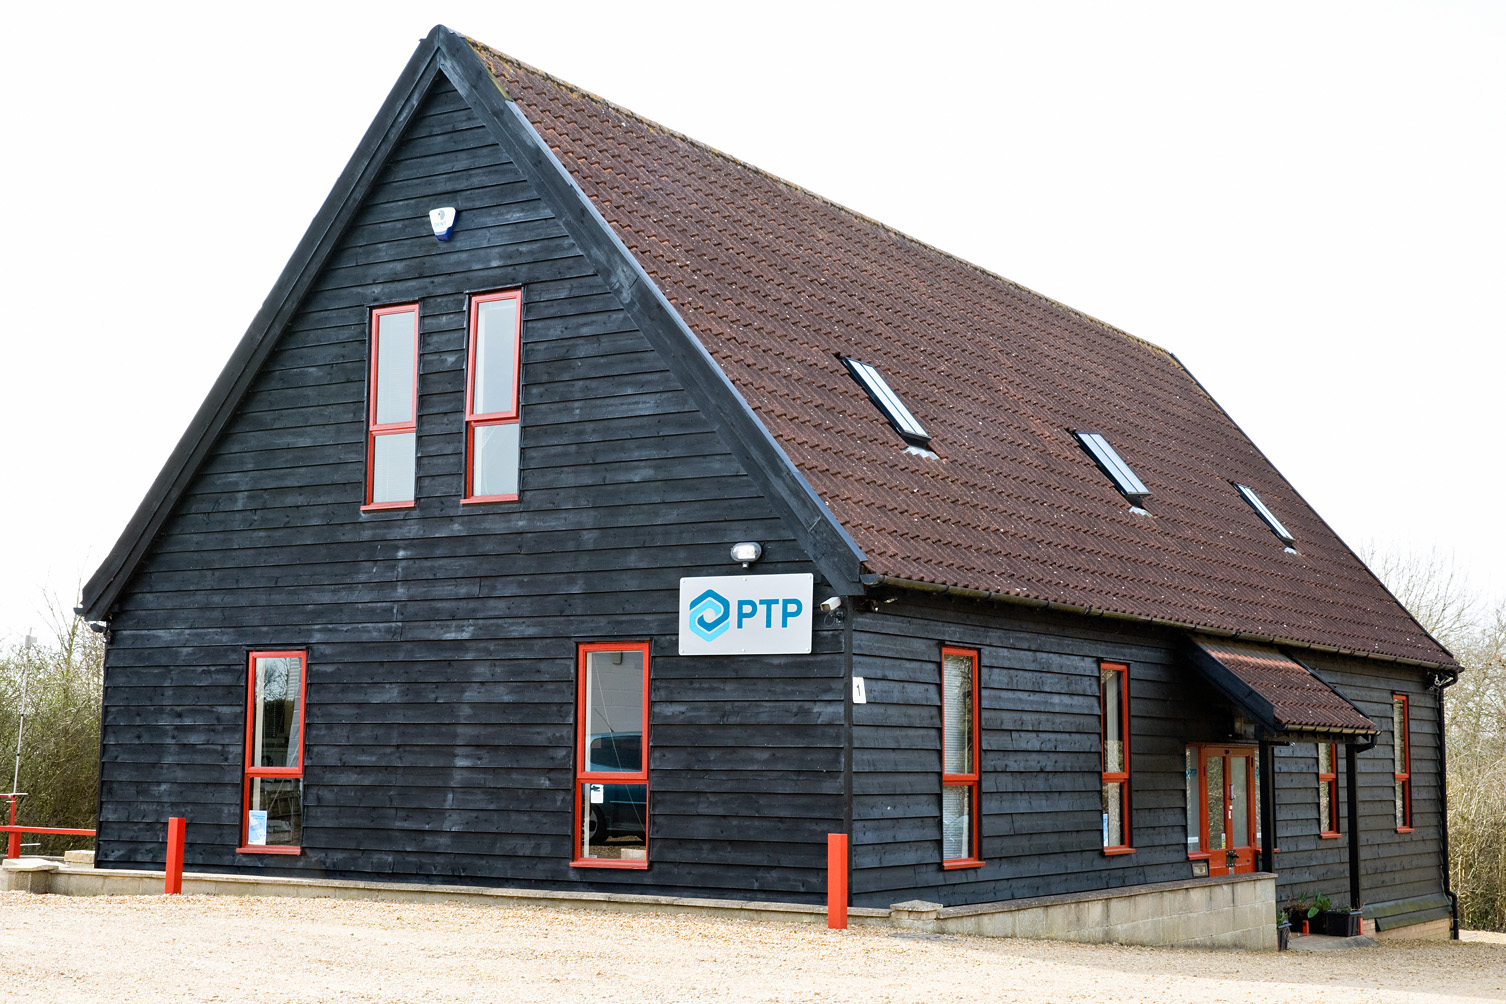 PT Partners Office in Toft